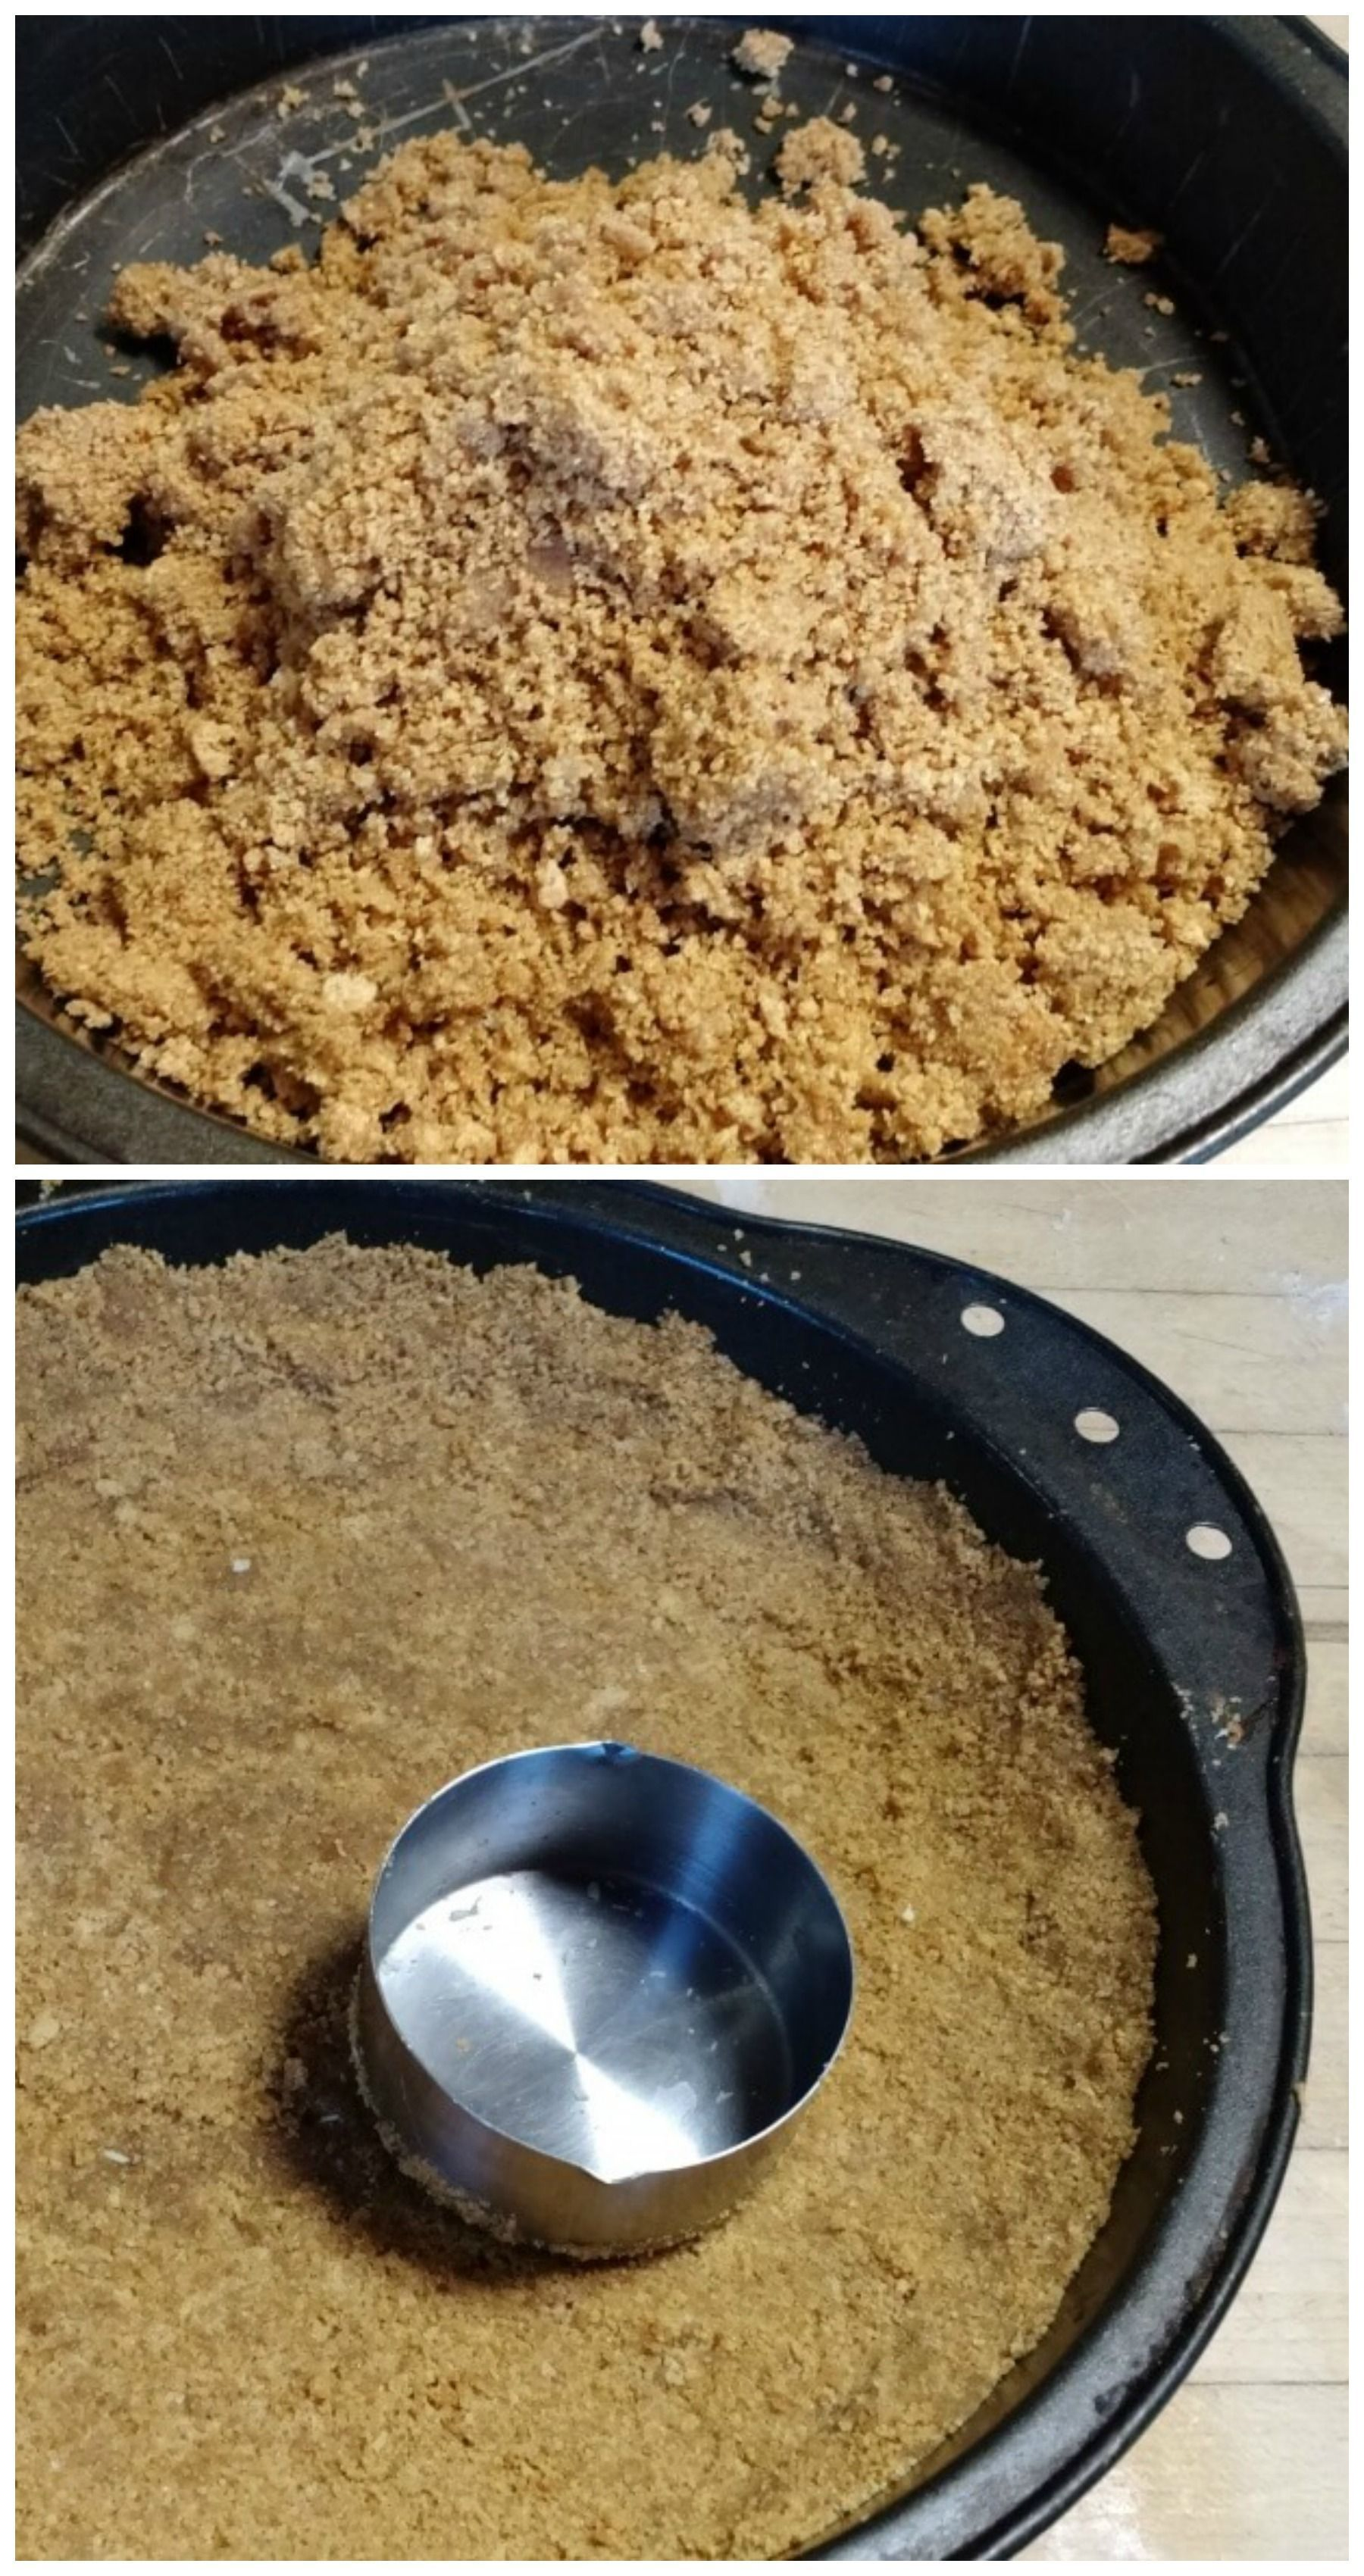 Buttery, thick homemade graham cracker crust. #grahamcracker #pie #crust #dessert #homemadegrahamcrackercrust Buttery, thick homemade graham cracker crust. #grahamcracker #pie #crust #dessert #homemadegrahamcrackercrust Buttery, thick homemade graham cracker crust. #grahamcracker #pie #crust #dessert #homemadegrahamcrackercrust Buttery, thick homemade graham cracker crust. #grahamcracker #pie #crust #dessert #homemadegrahamcrackercrust Buttery, thick homemade graham cracker crust. #grahamcracker #homemadegrahamcrackercrust